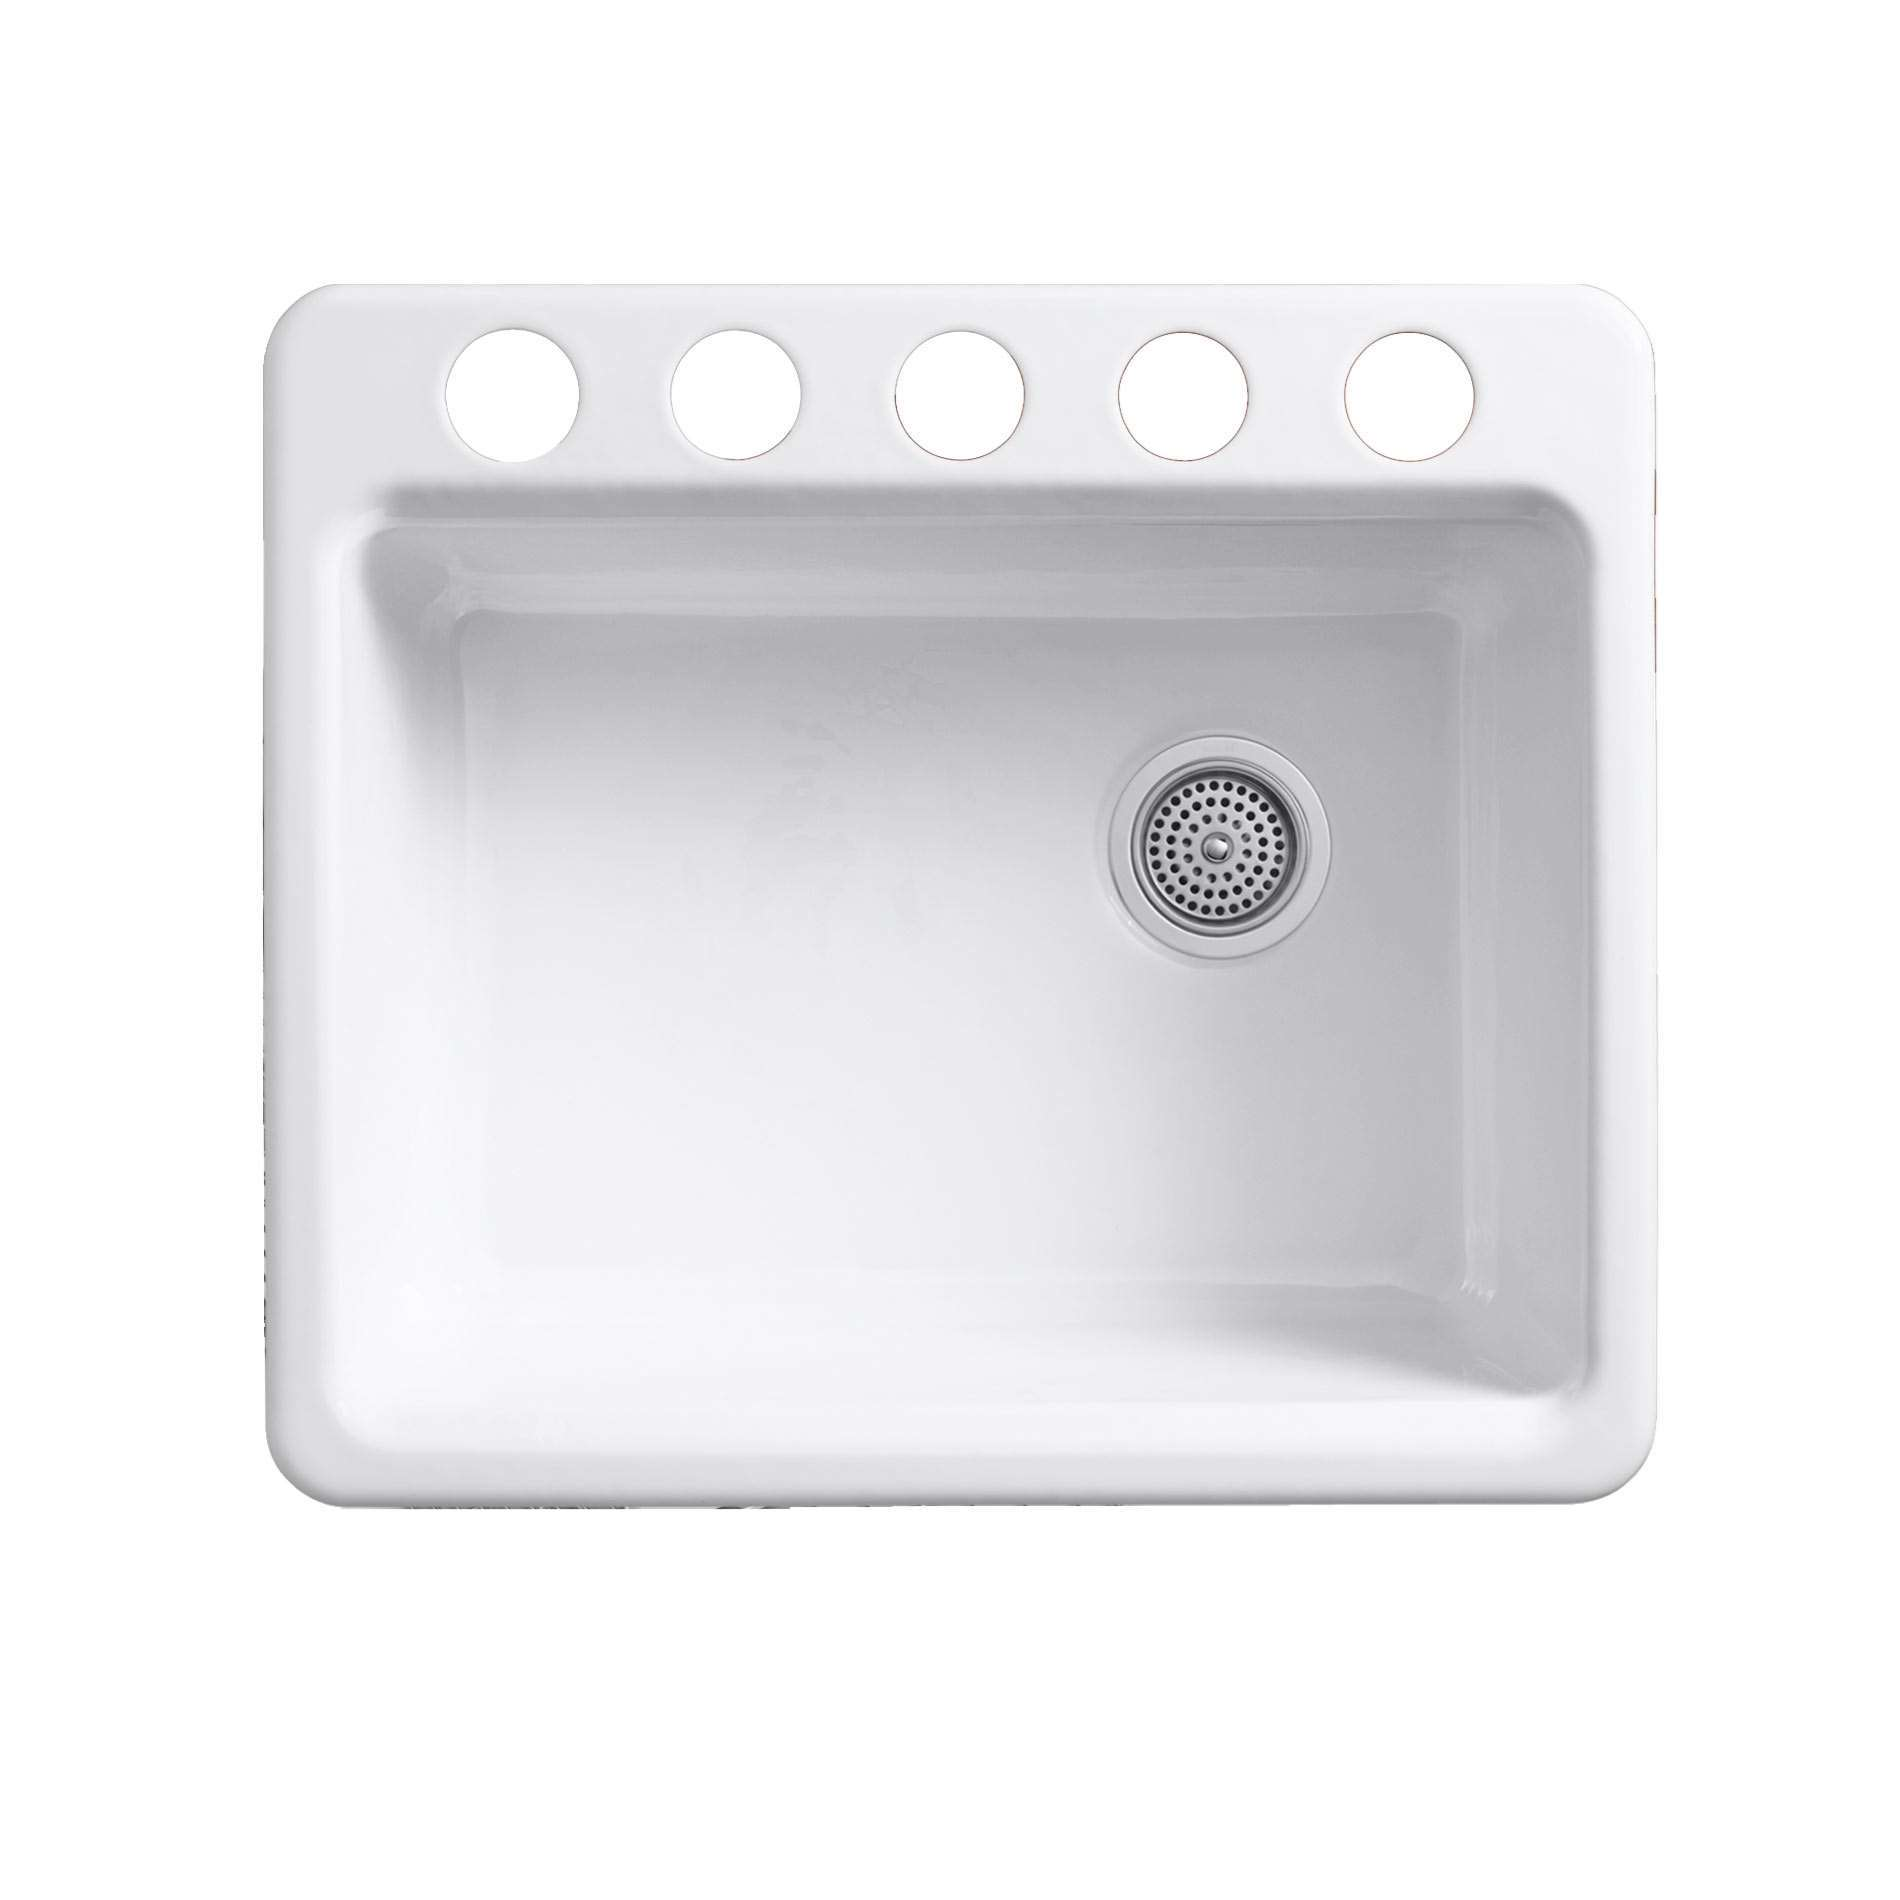 Kohler riverby 5872 undermount cast iron sink kitchen - Cast iron kitchen sink manufacturers ...